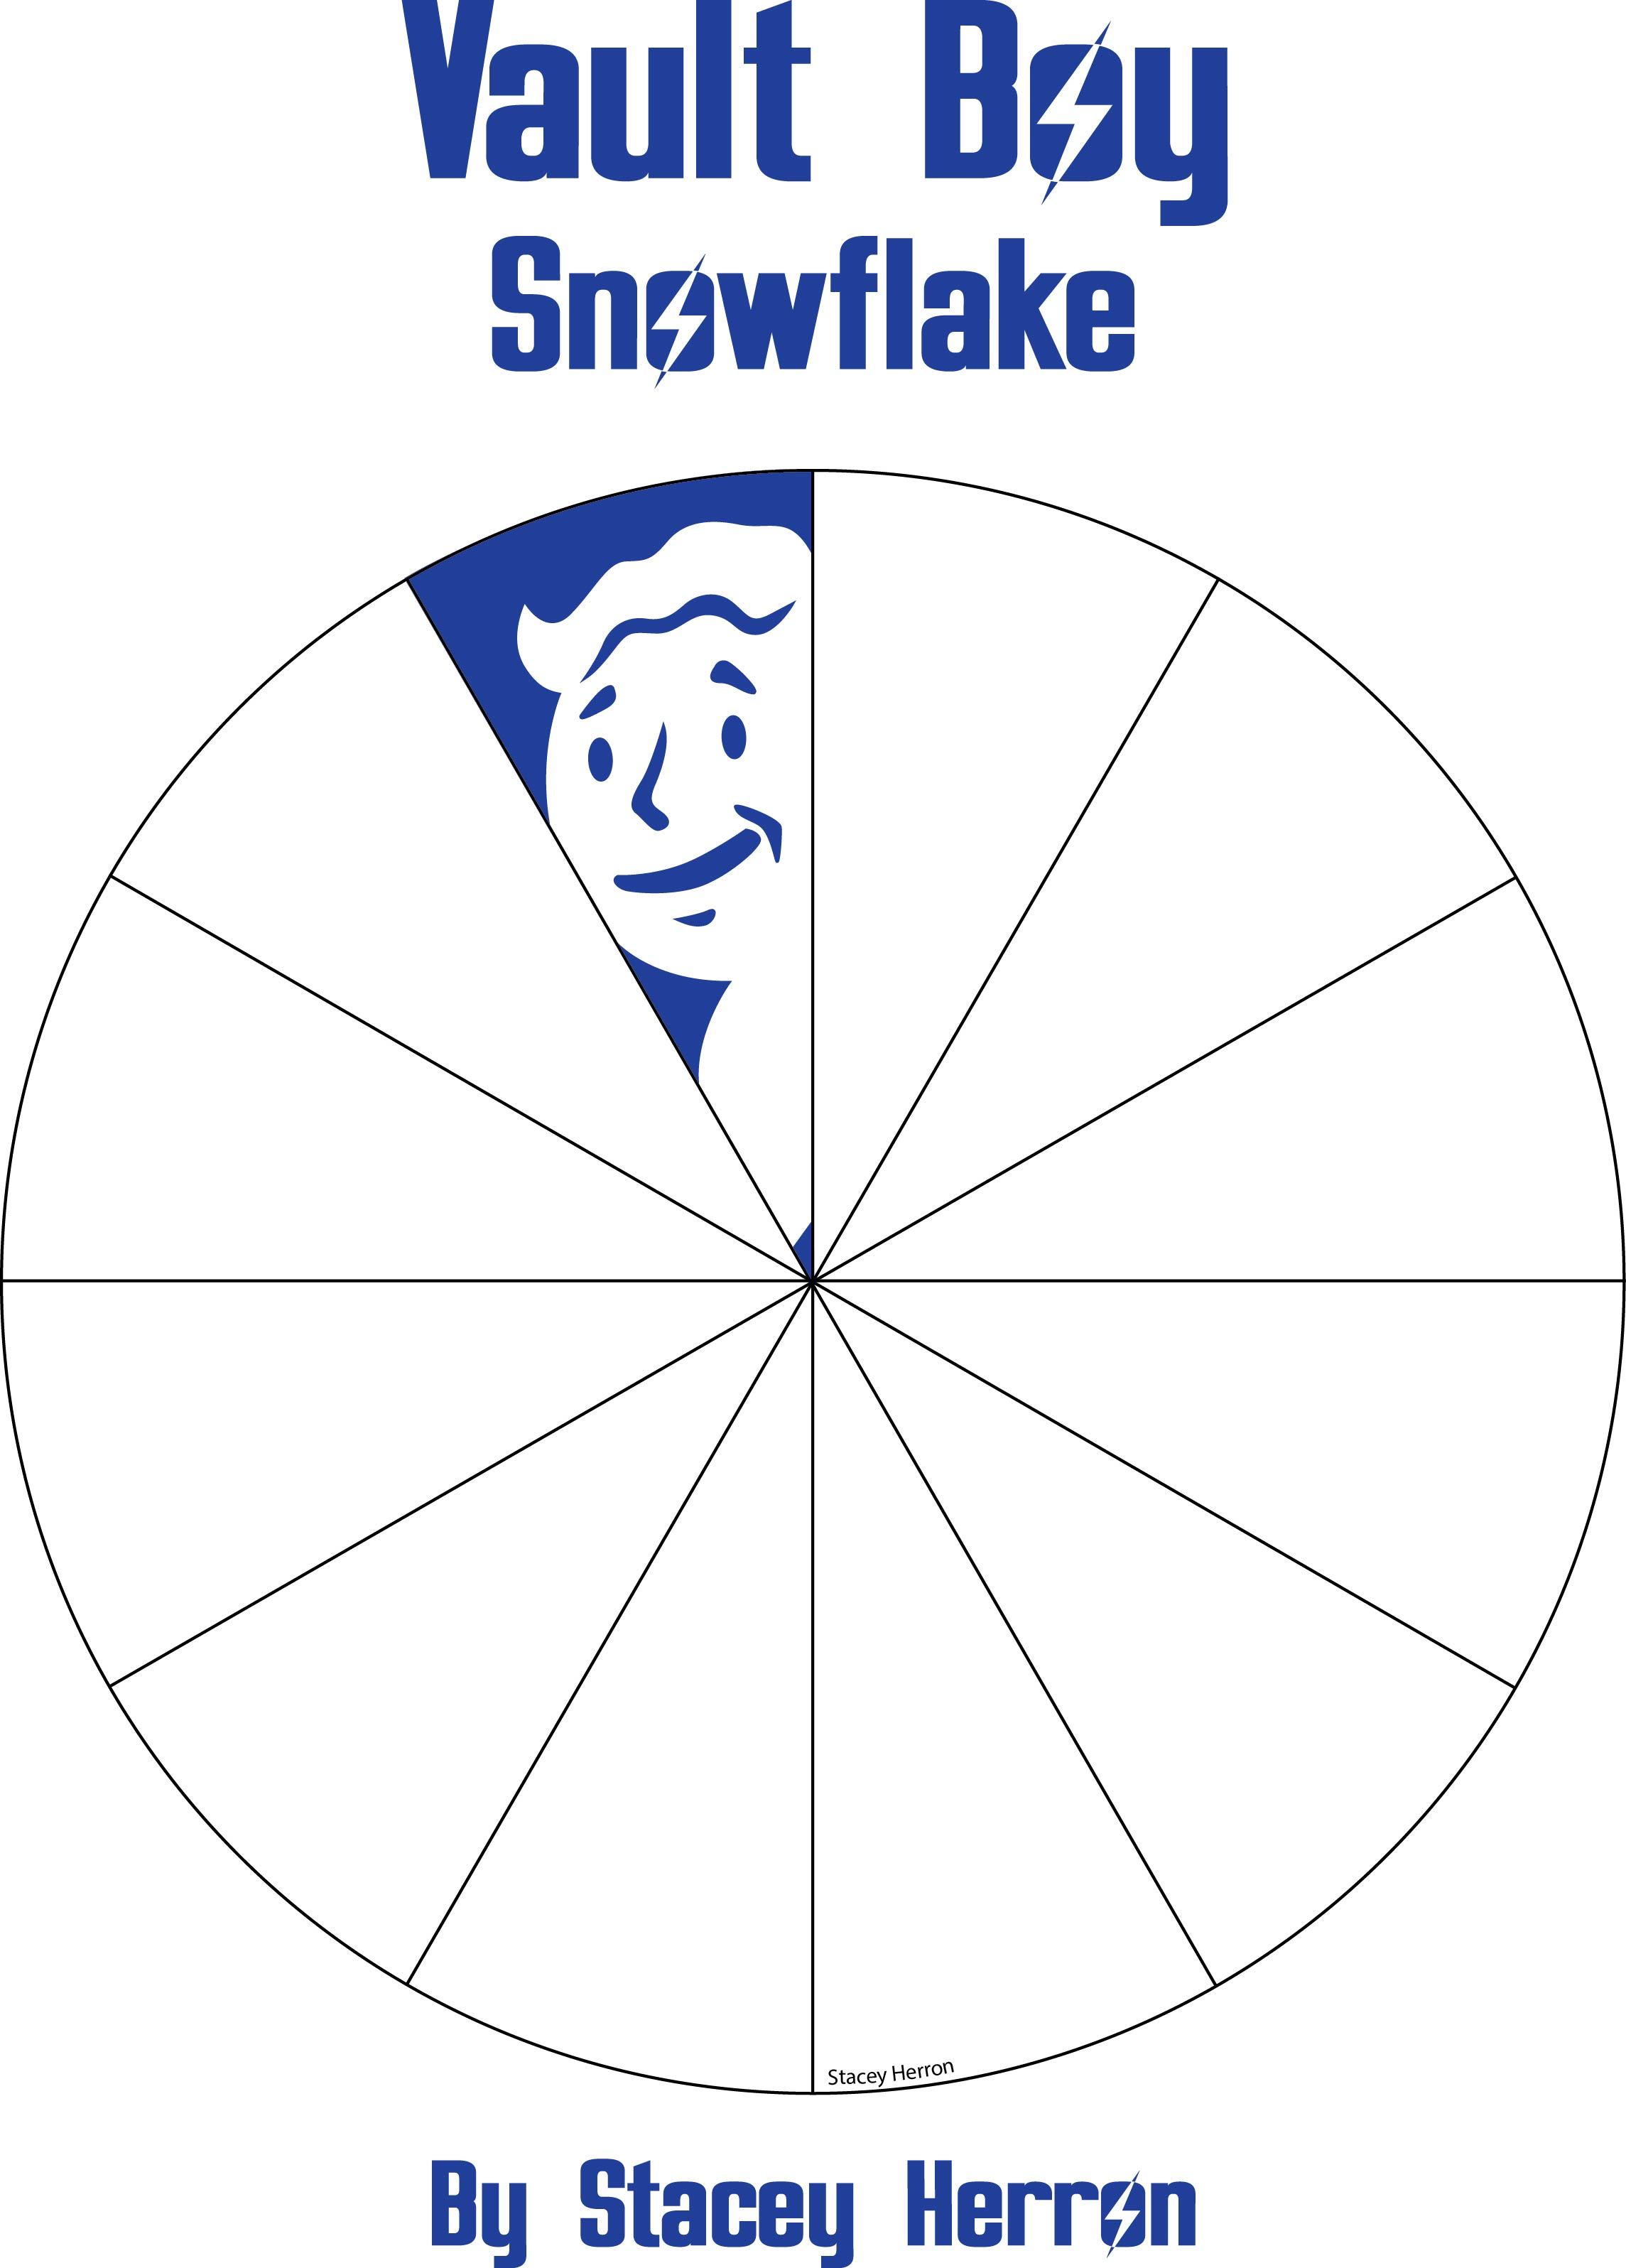 Vault Boy From Fallout Snowflake Template By Stacey On